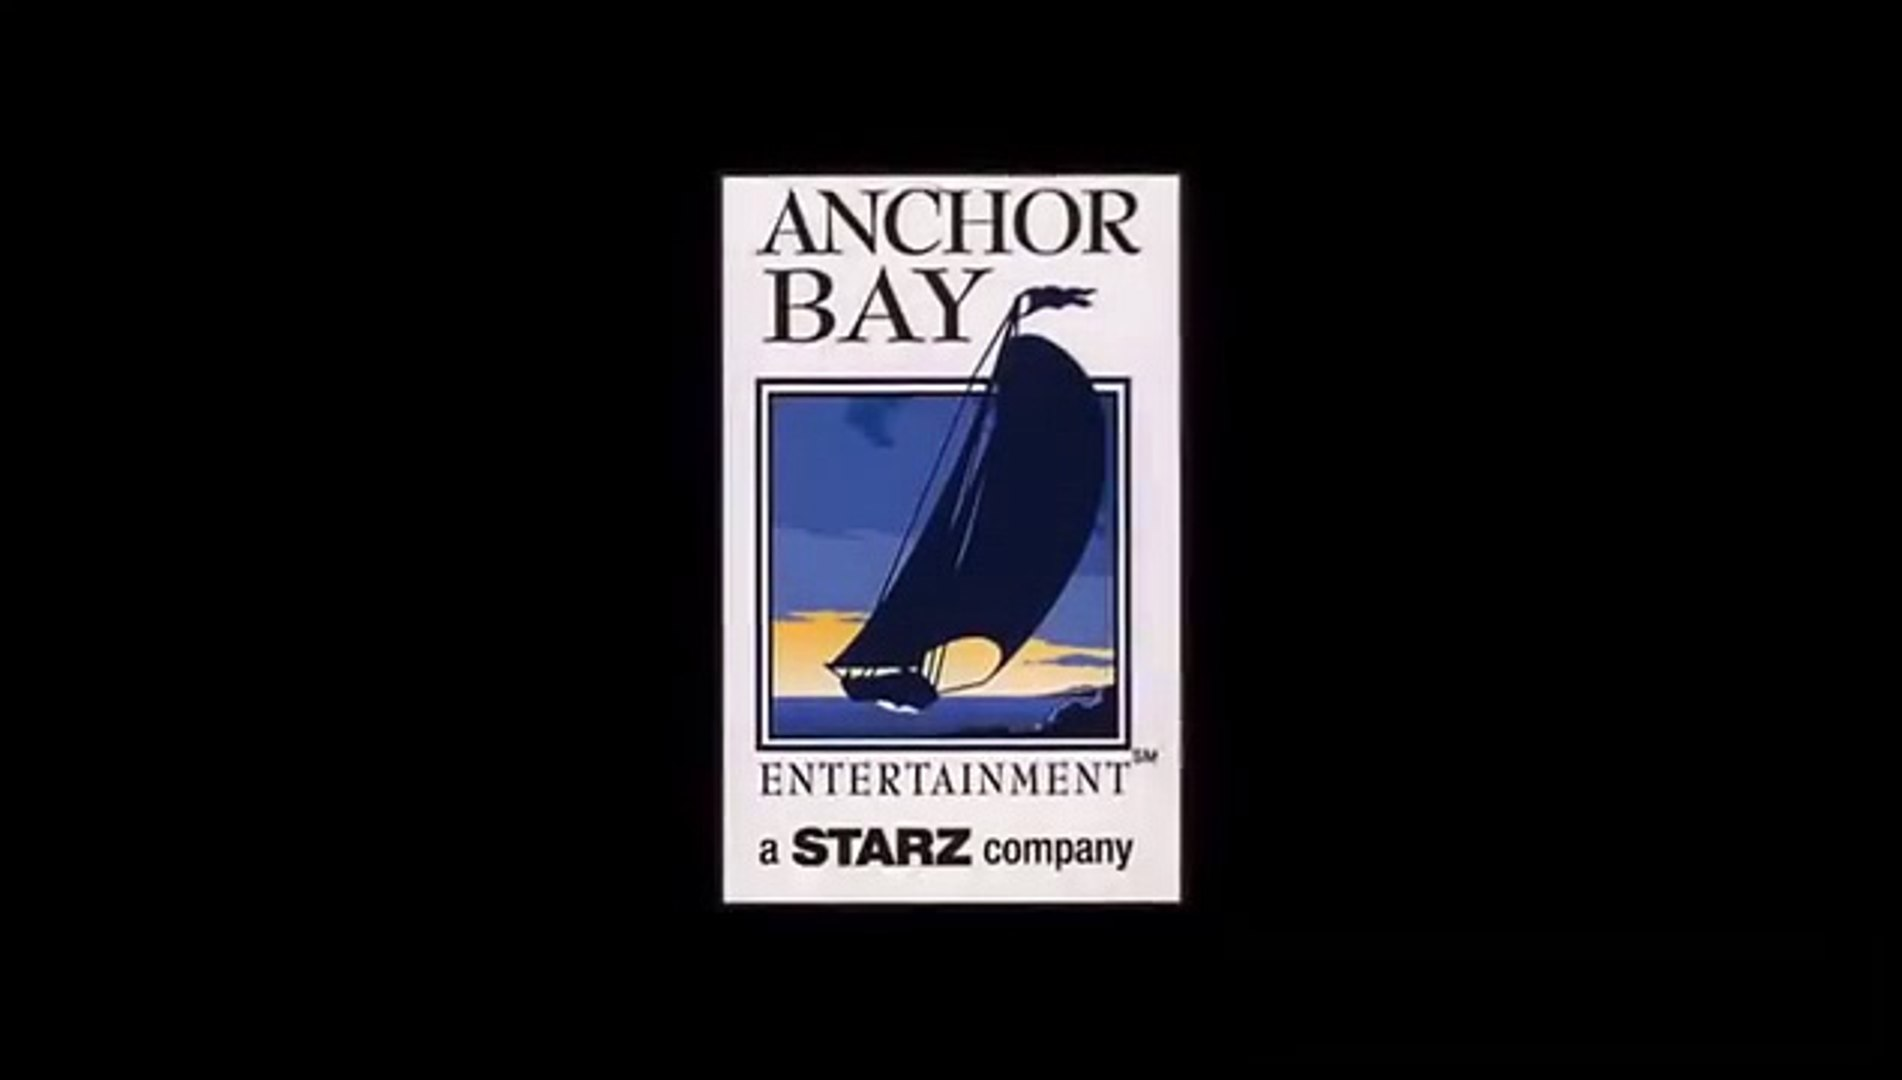 Anchor Bay Entertainment/GlenEcho Entertainment/ Code Entertainment (2006)